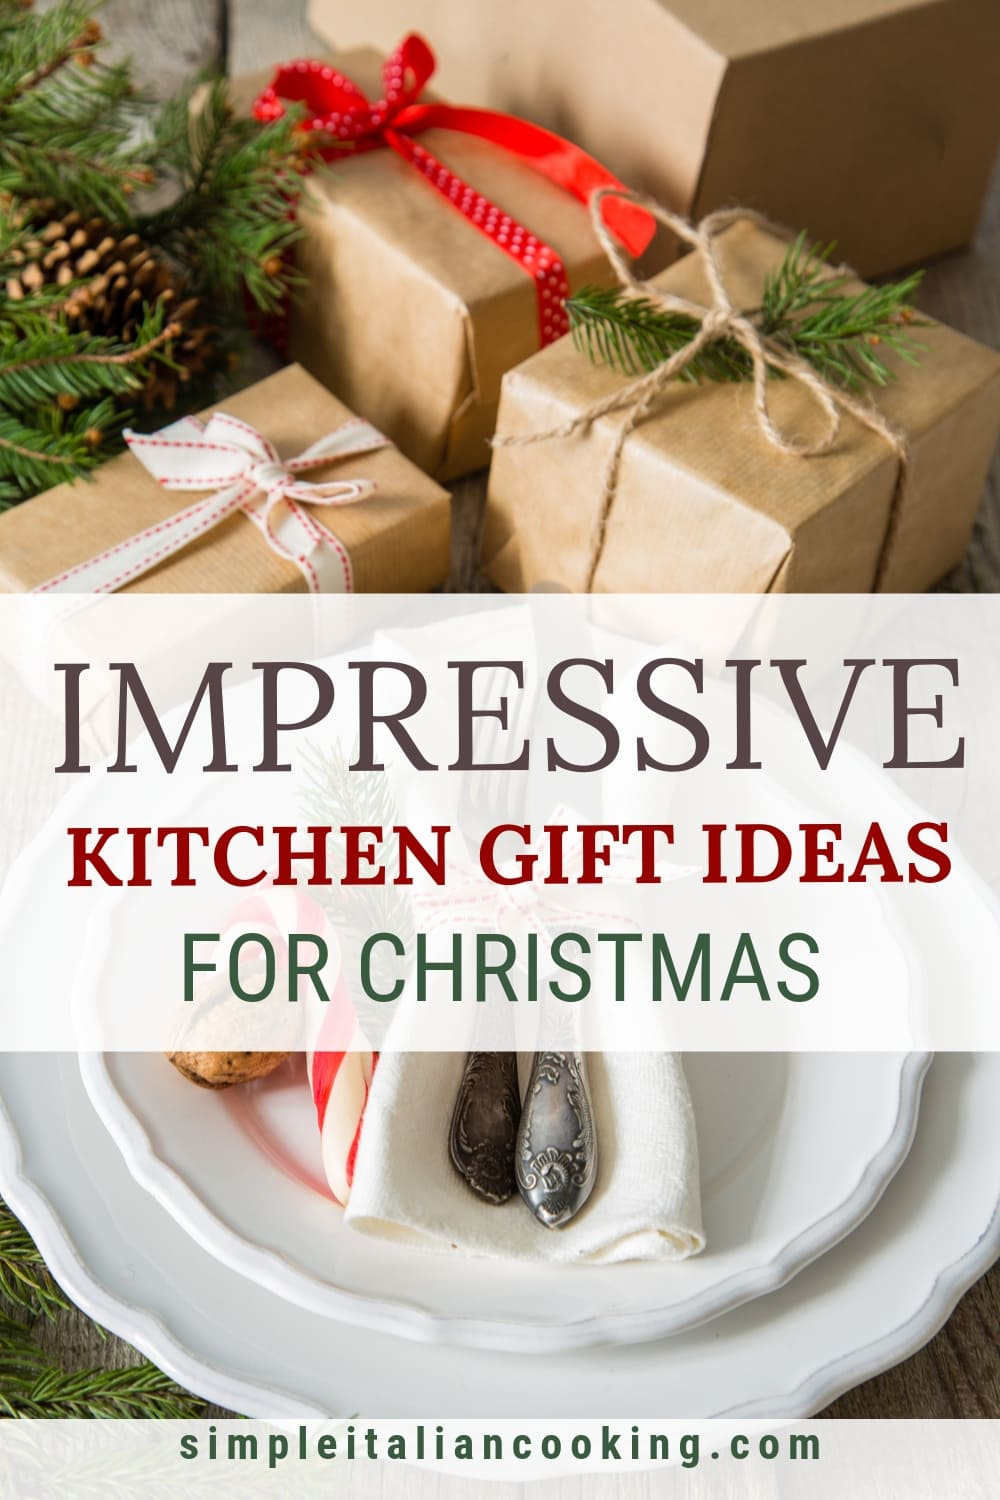 Here are 25 Kitchen Gift Ideas for Christmas!  Be Inspired with this wide range of ideas for the cook in the family! Perfect for mom, dad, or friends.  Kitchen gadgets, coffee, food, and ideas for healthy eating (I love my spiralizer!)  #kitchengiftideas #italianchristmasfoodgifts #healthygiftideas #christmaskitchengifts